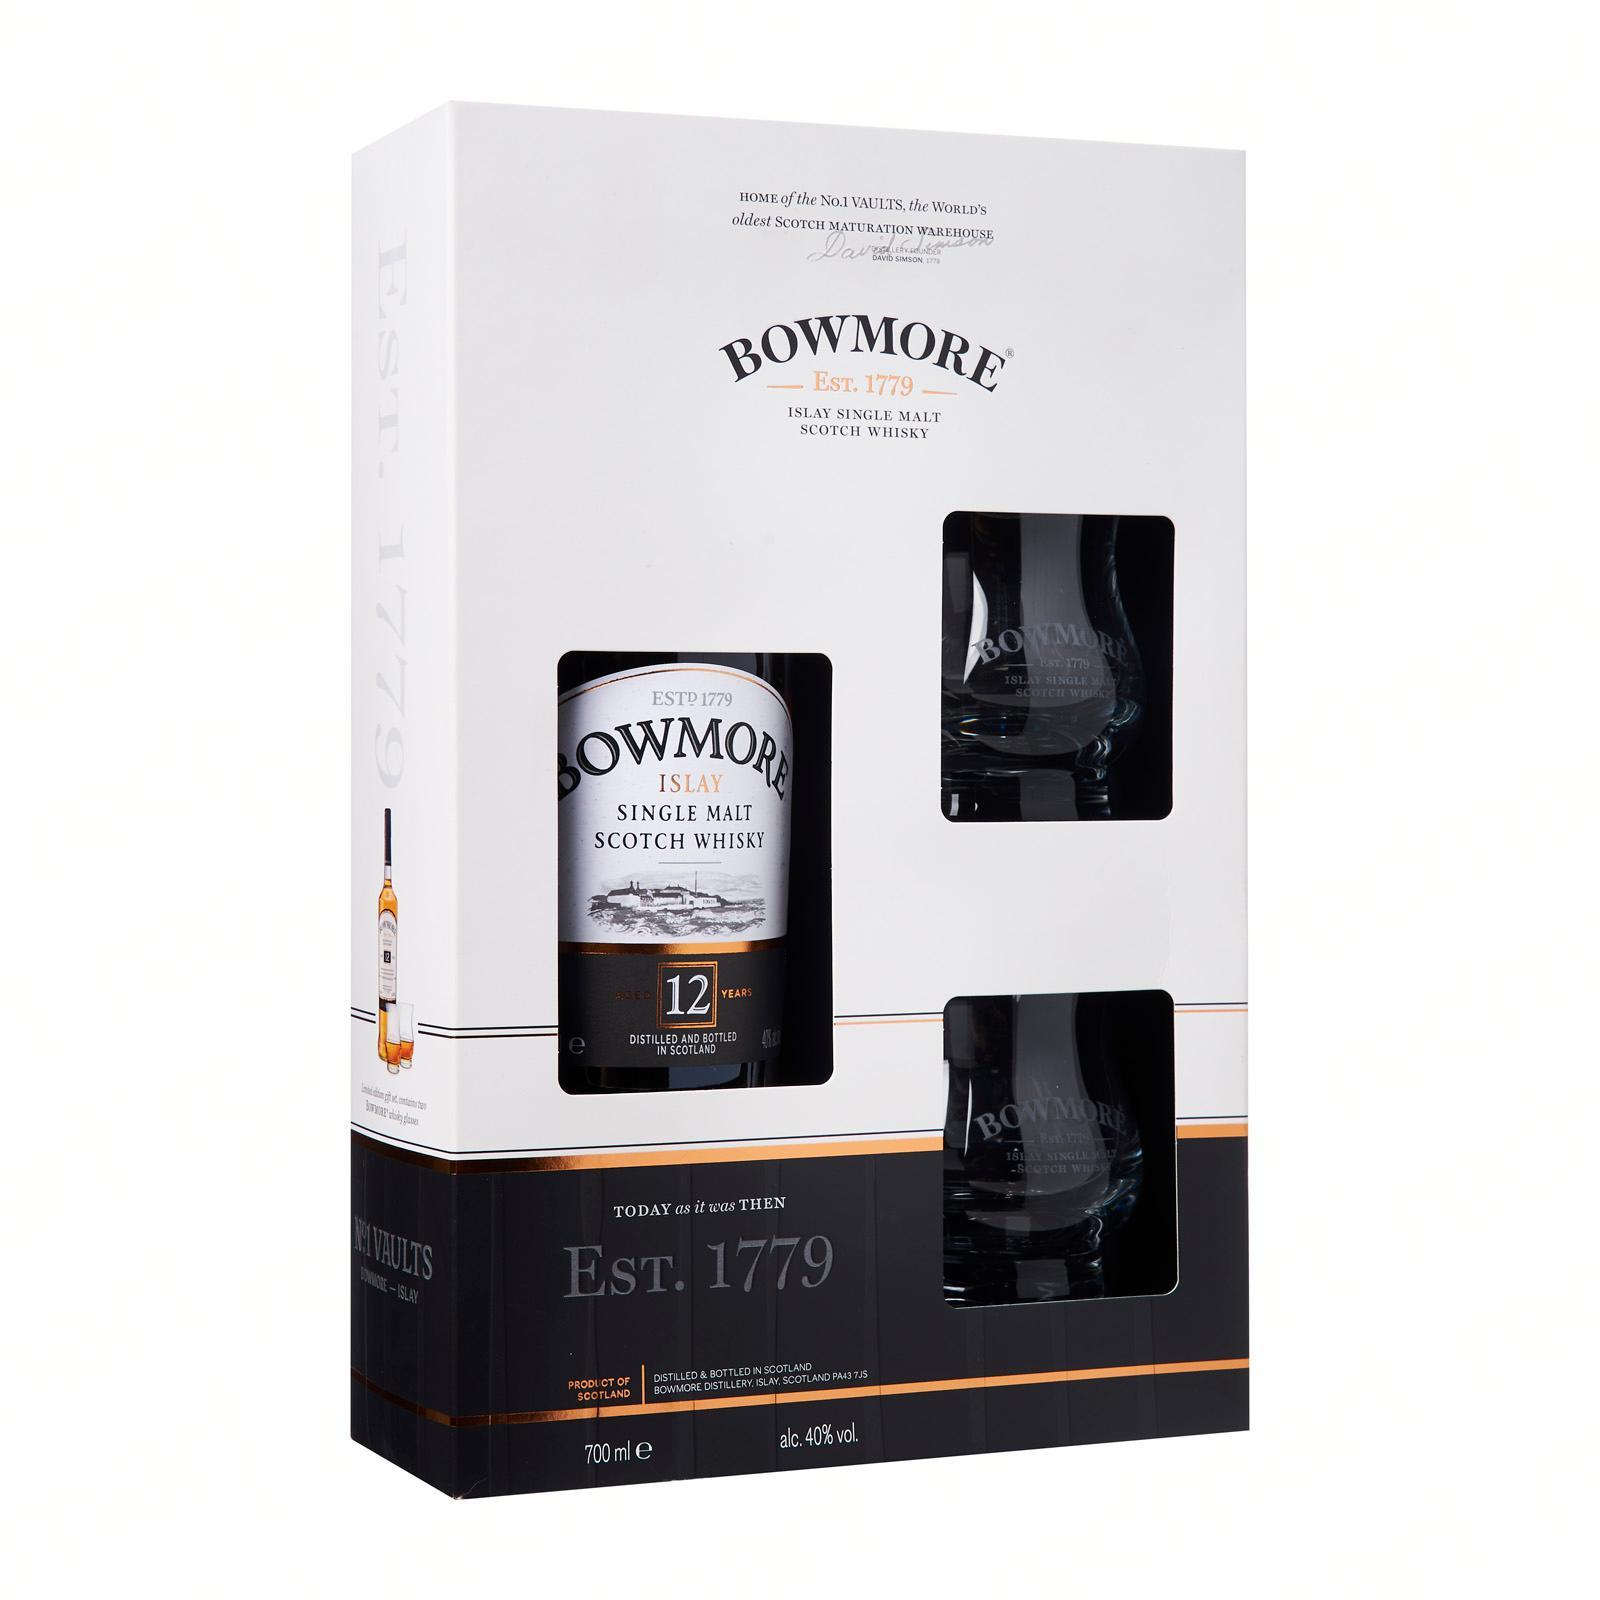 Bowmore Bowmore 12 Year Old And 2 Glass Gift Set - By The Liquor Shop Singapore